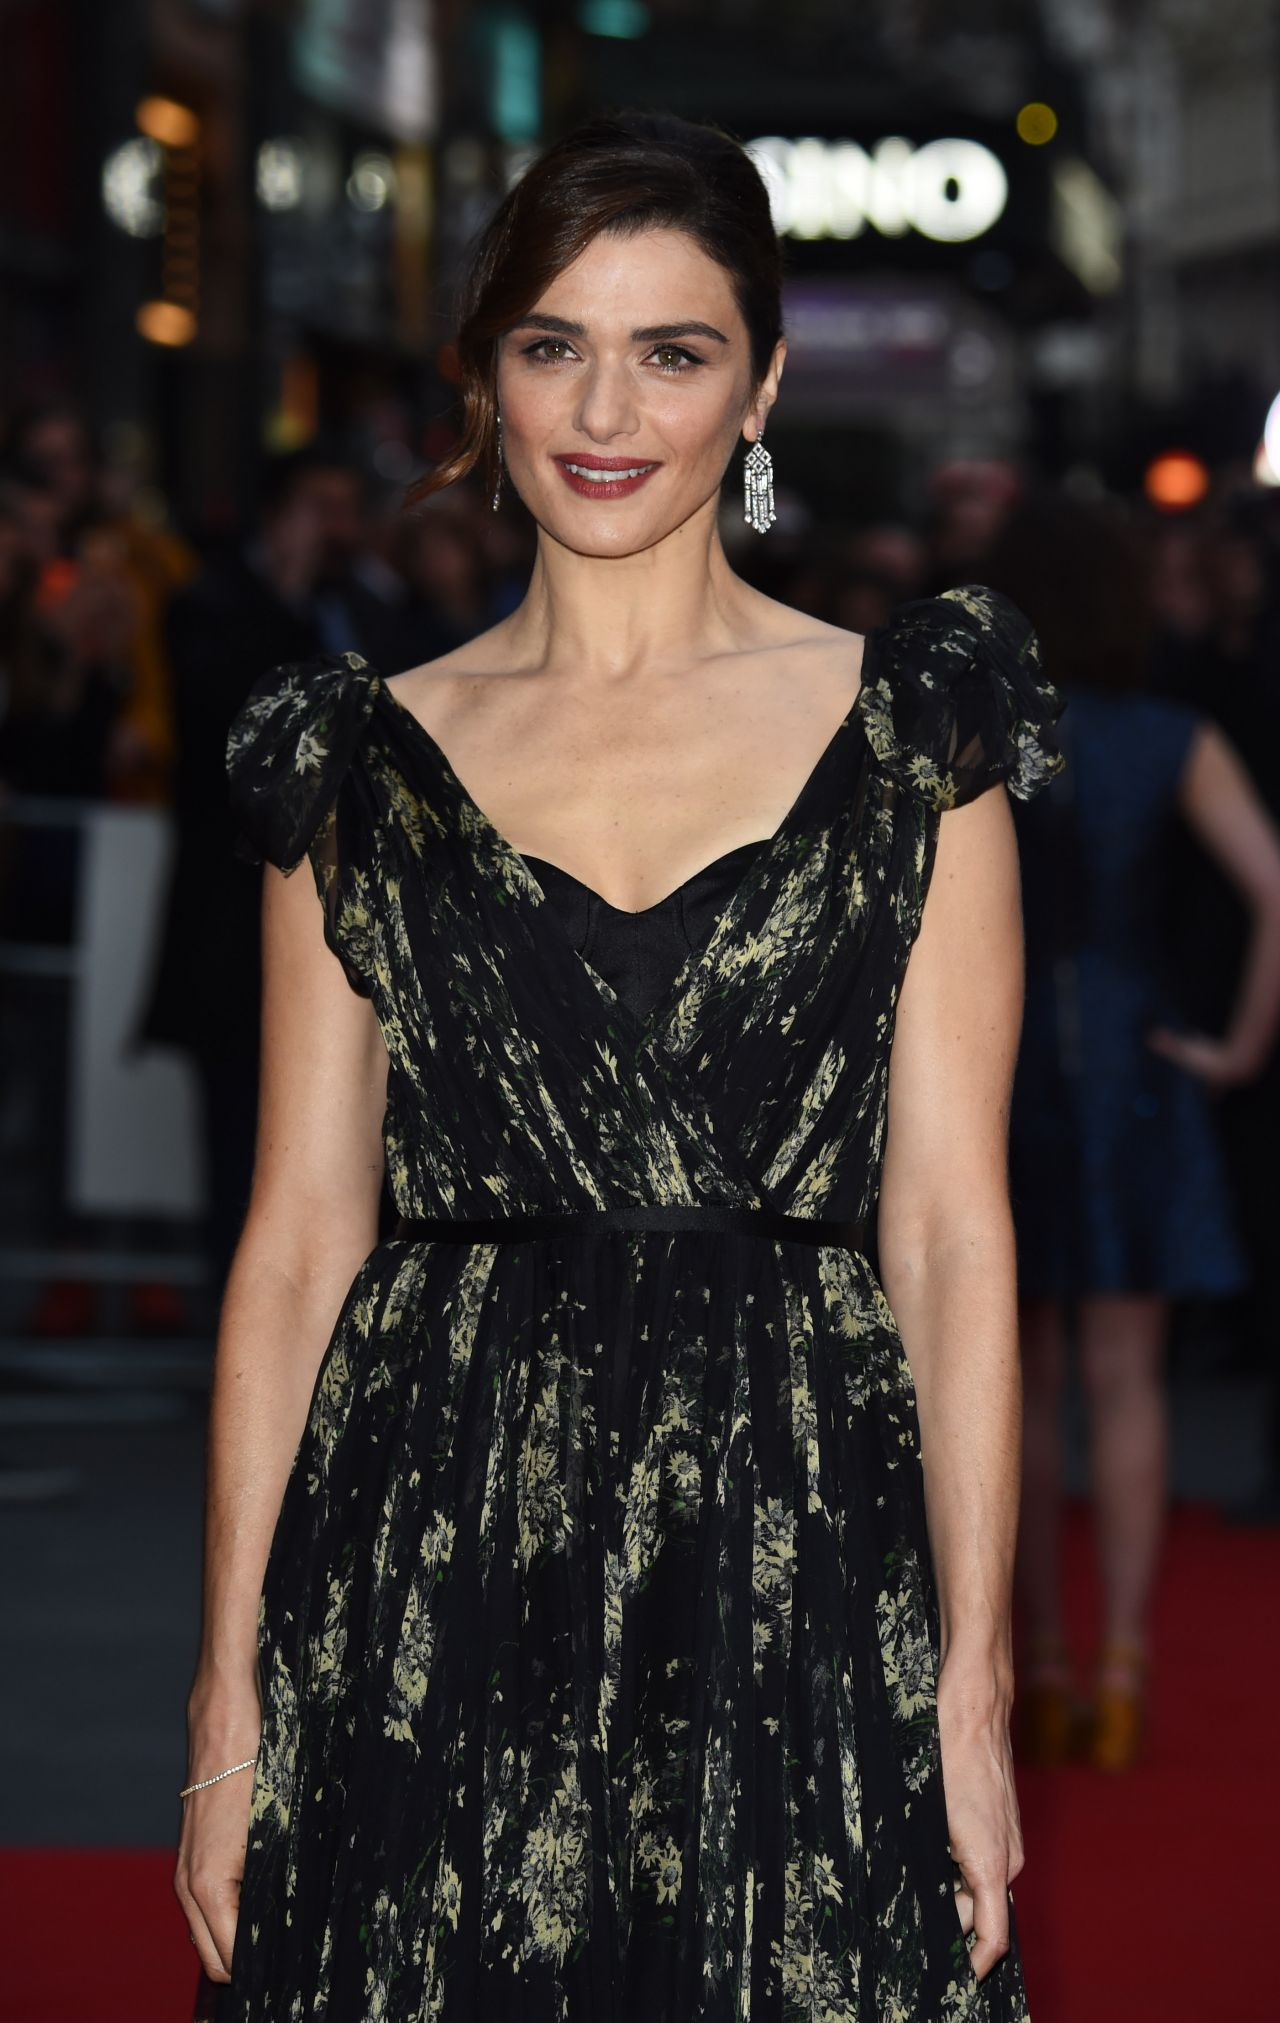 rachel-weisz-the-lobster-dare-gala-bfi-london-film-festival_1